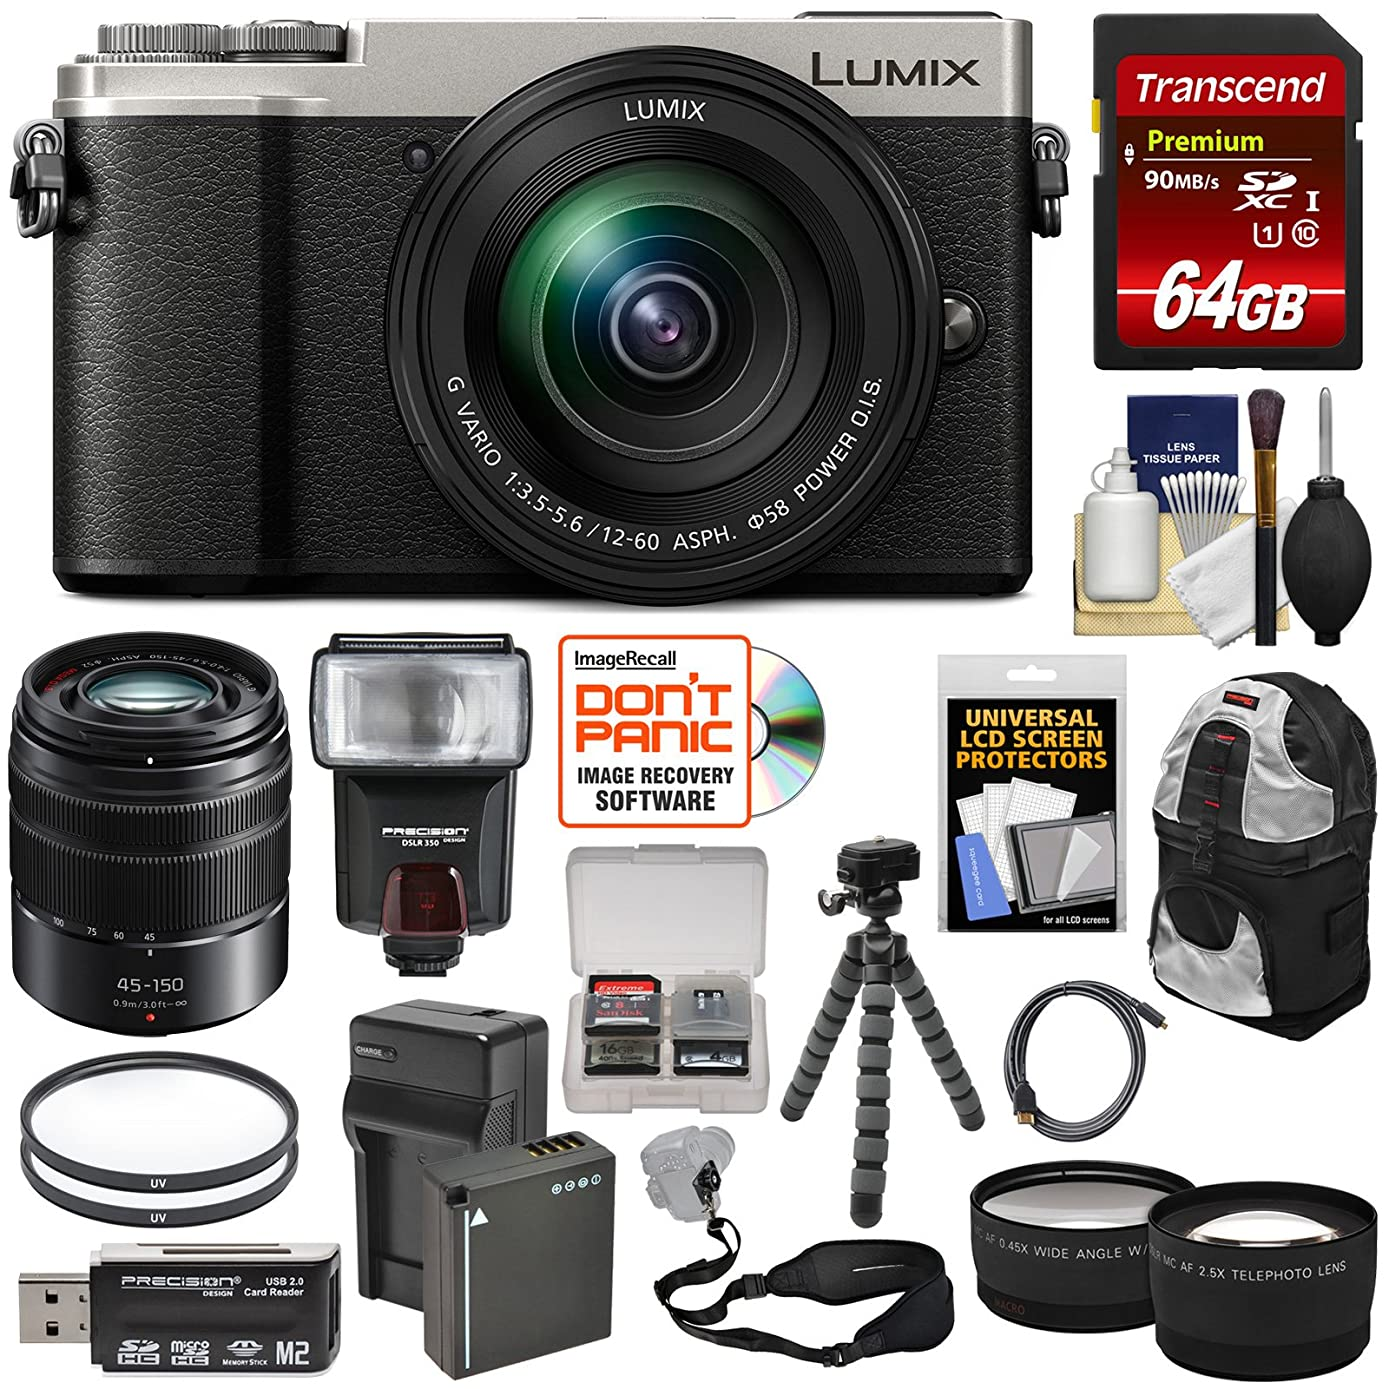 Panasonic Lumix DC-GX9 4K Wi-Fi Digital Camera & 12-60mm Lens (Silver) + 45-150mm Lens + 64GB Card + Battery + Backpack + Tripod + Flash + Tele & Wide Lens Kit